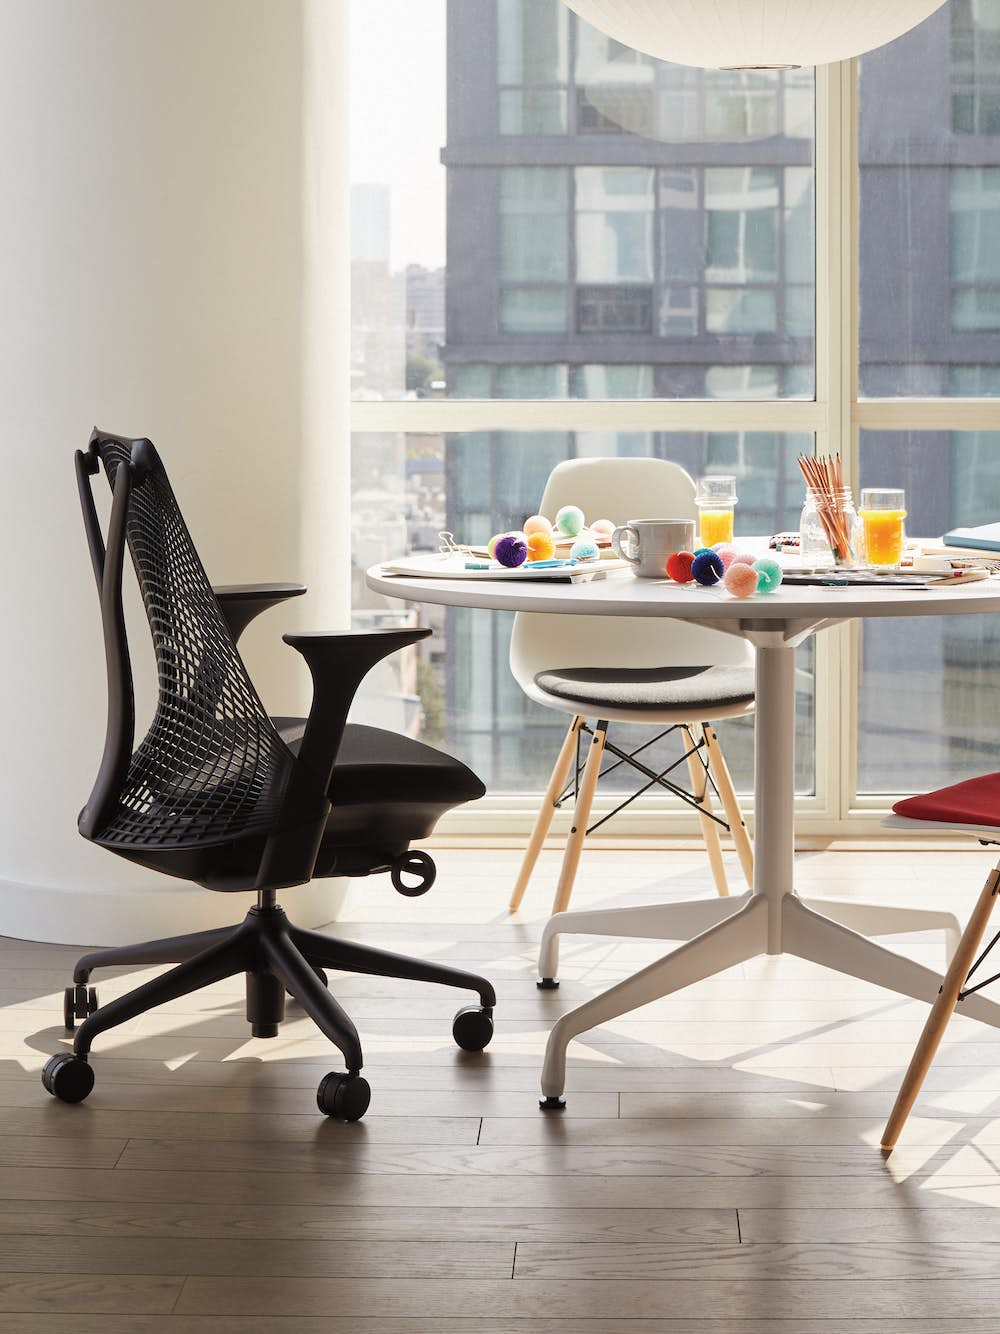 Eames Table with Round Top and Segmented Base with Sayl Chair and Eames Shell Side Chairs with Seatpad